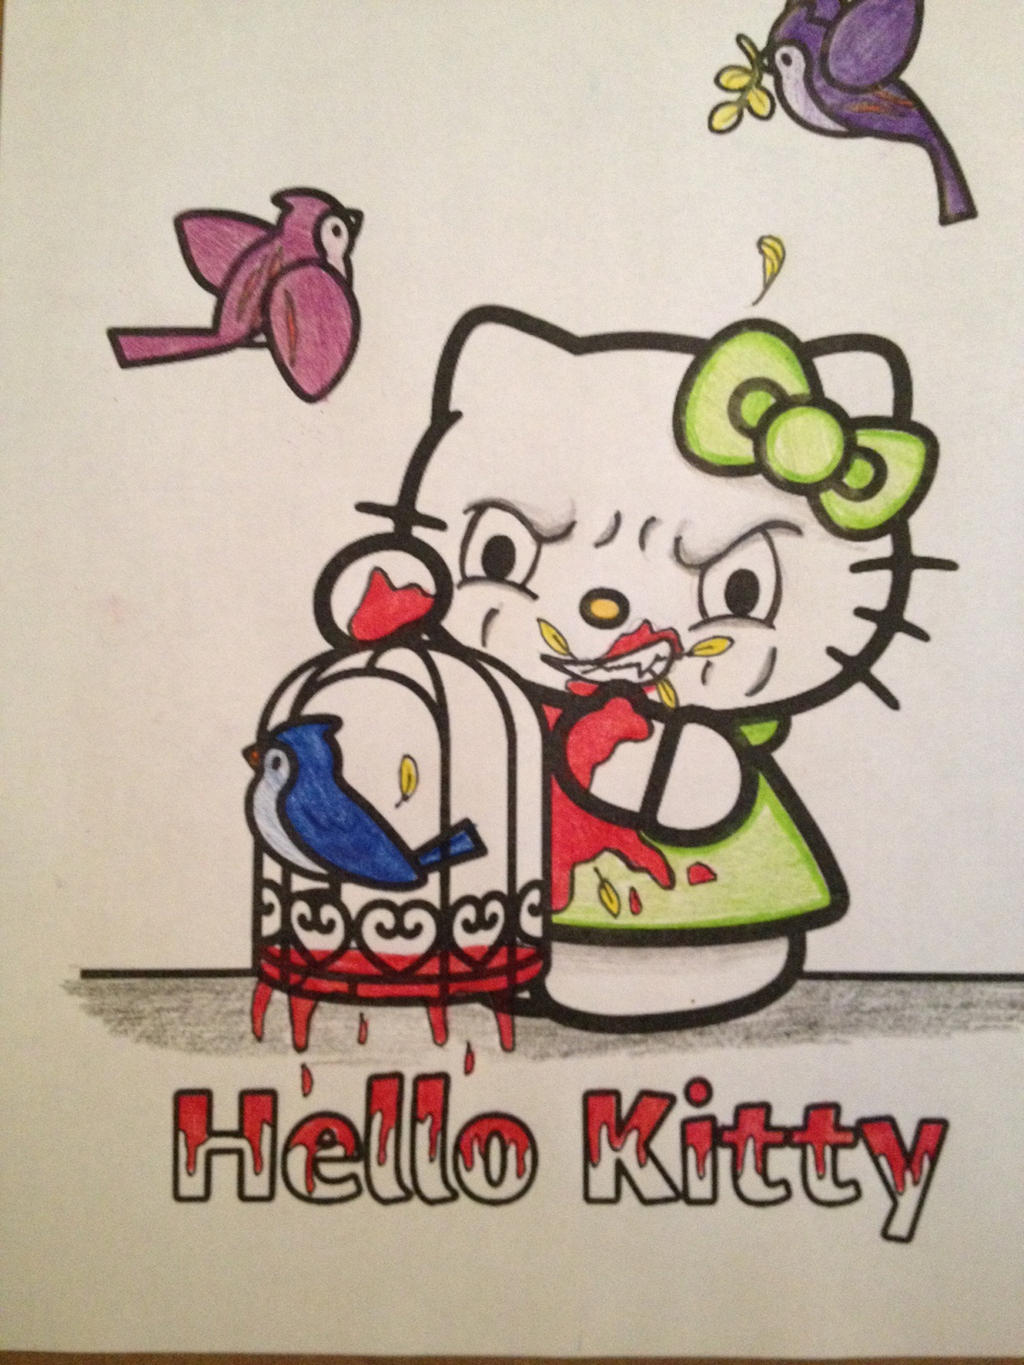 hello krazy coloring book corruption by mmm brainss on deviantart